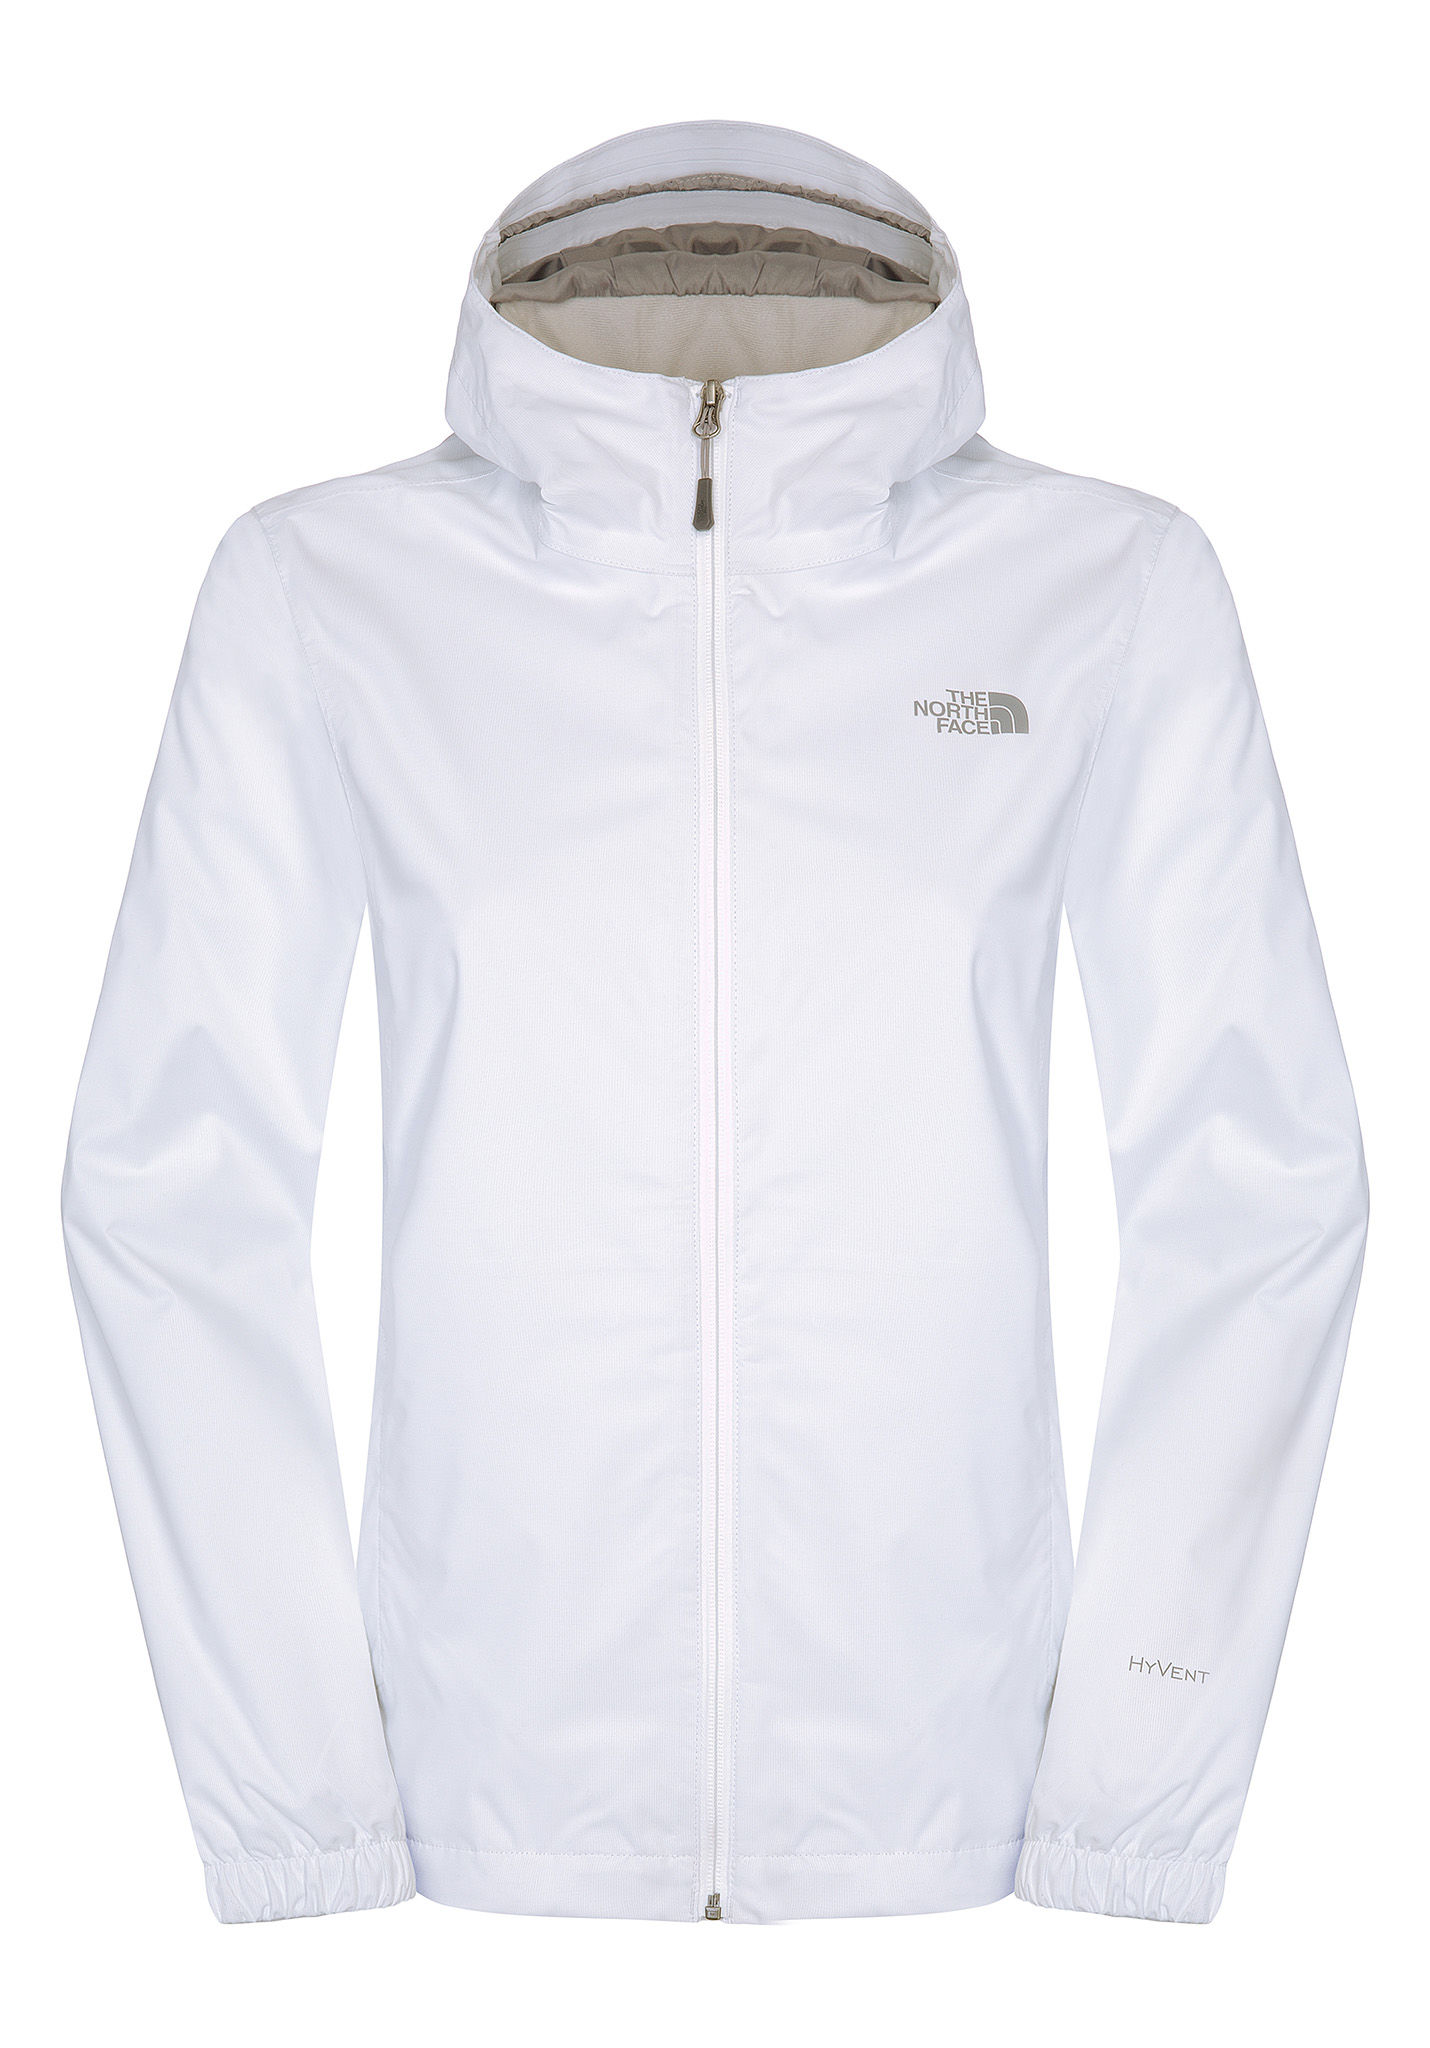 The Planet Wit Dames North Face Jas Quest Sports Outdoor Voor rxfrwq78